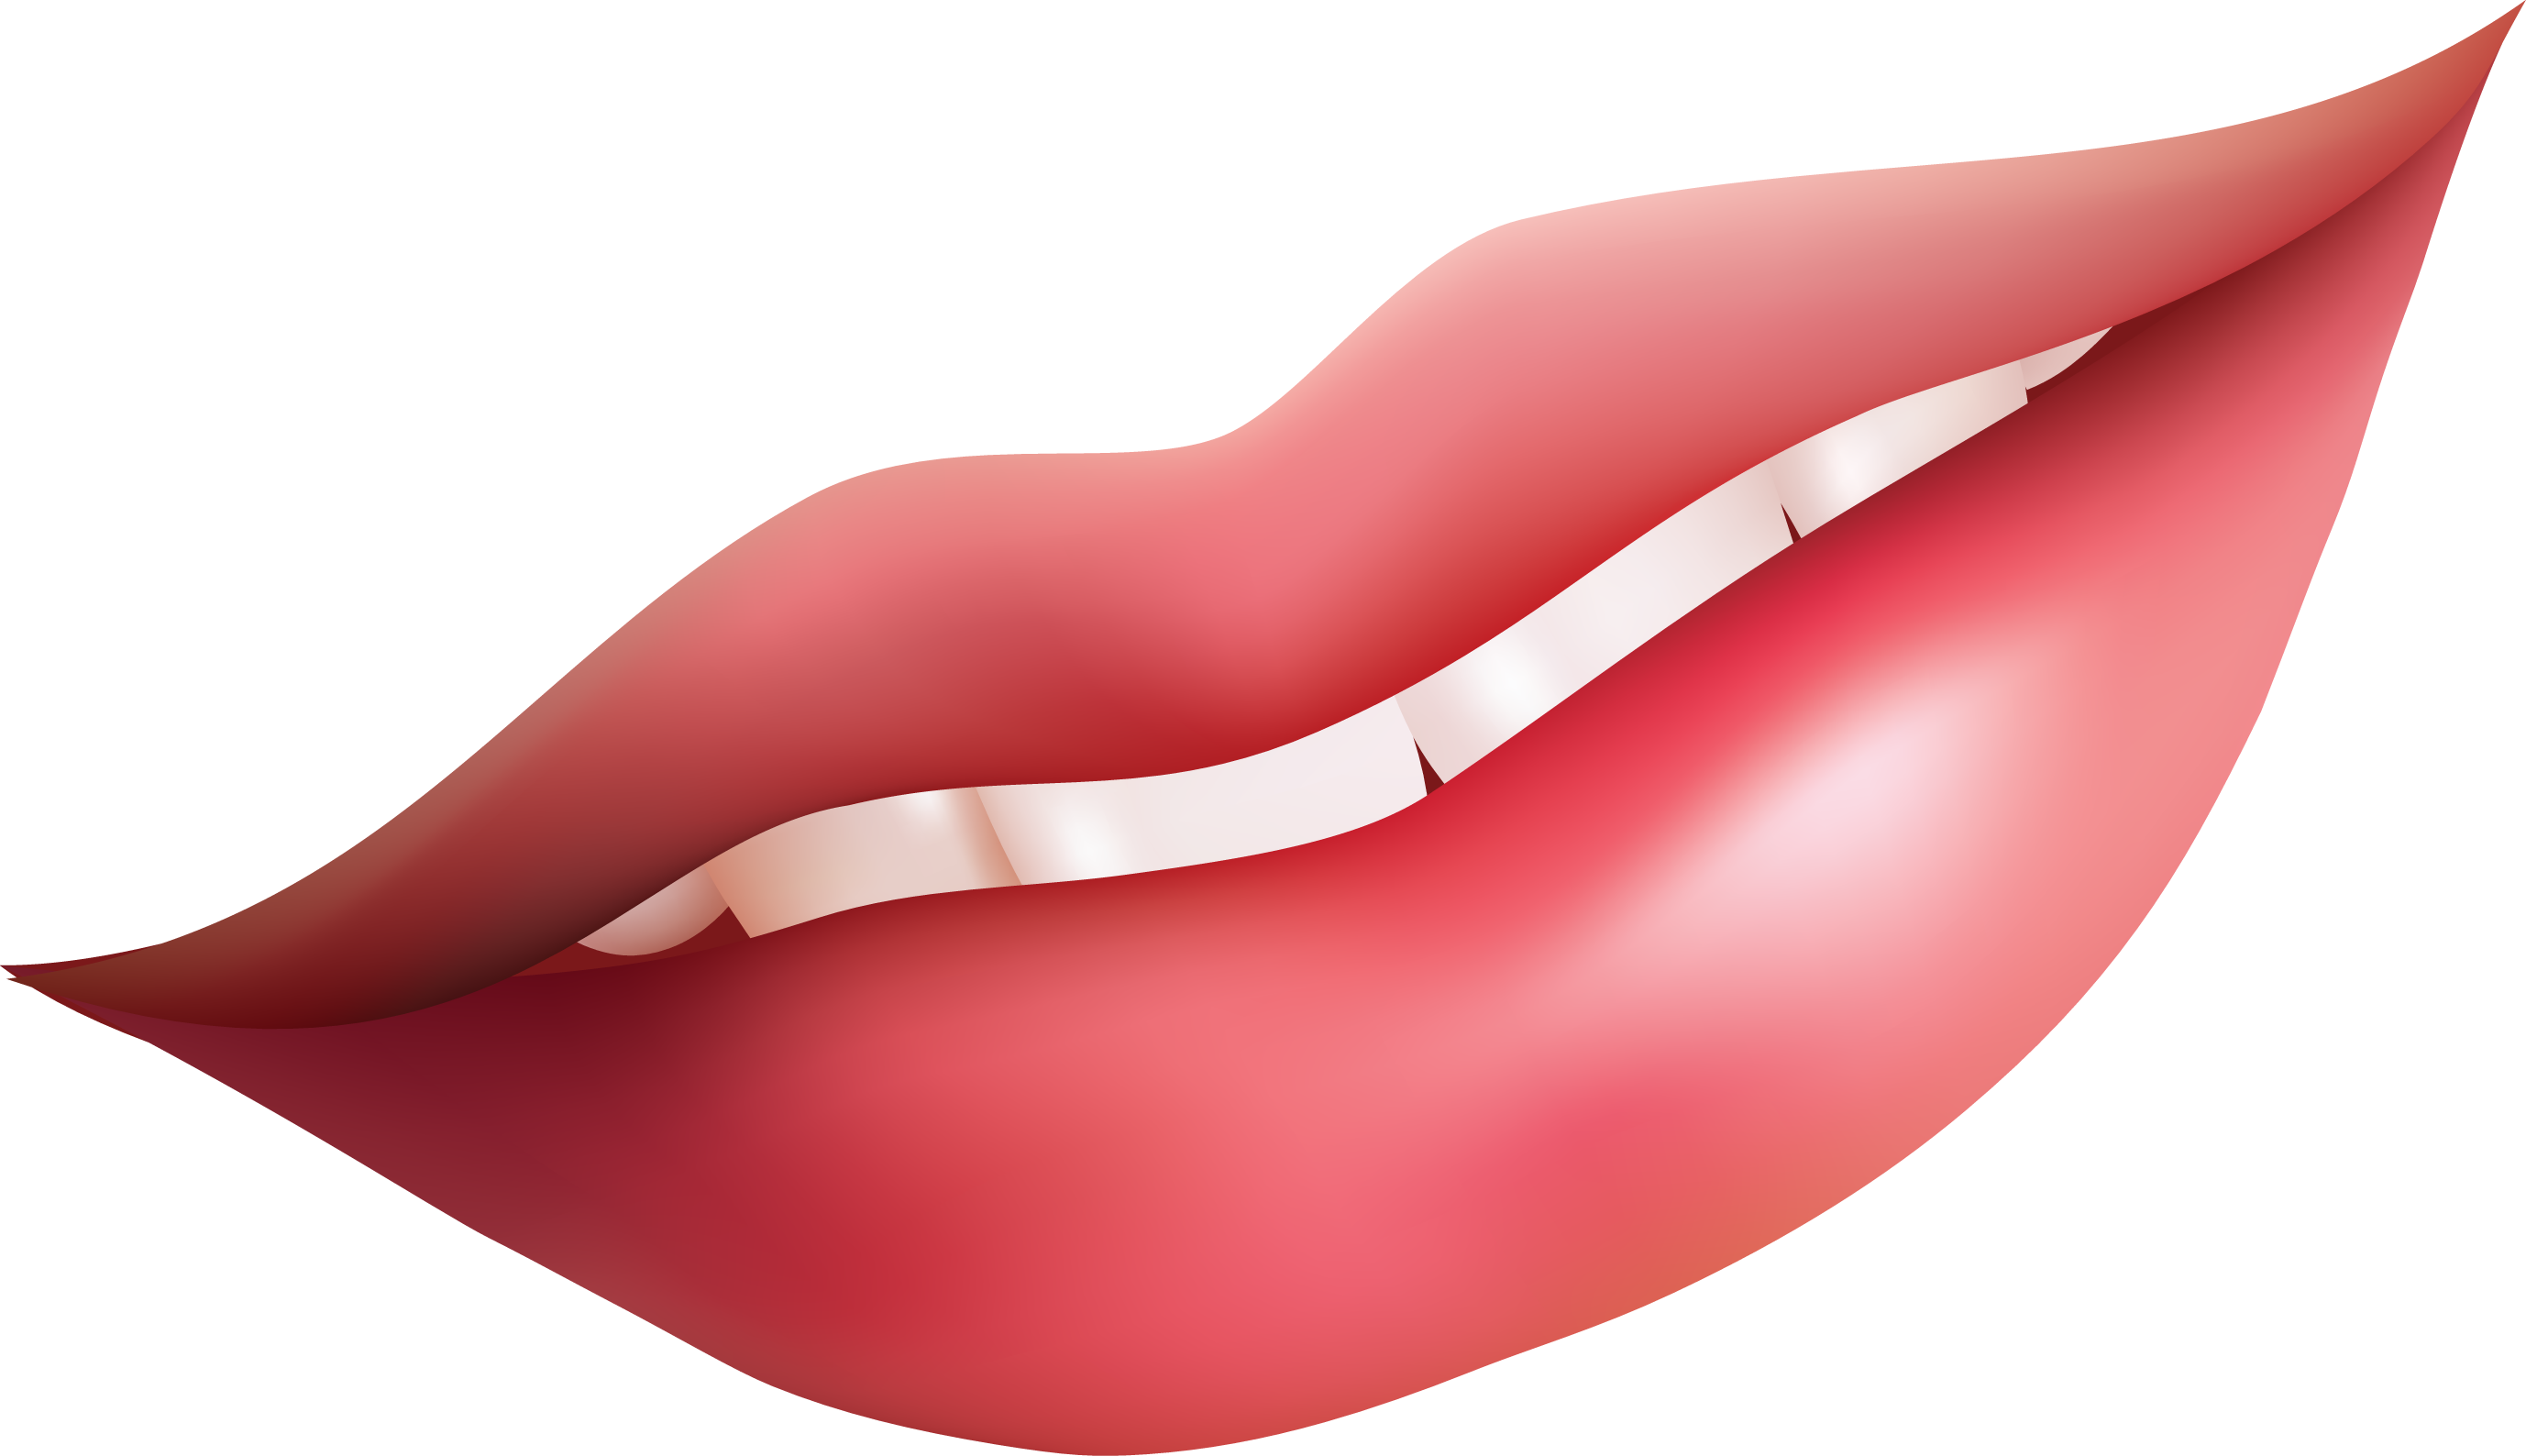 Lip clipart transparent background. Lips png image free